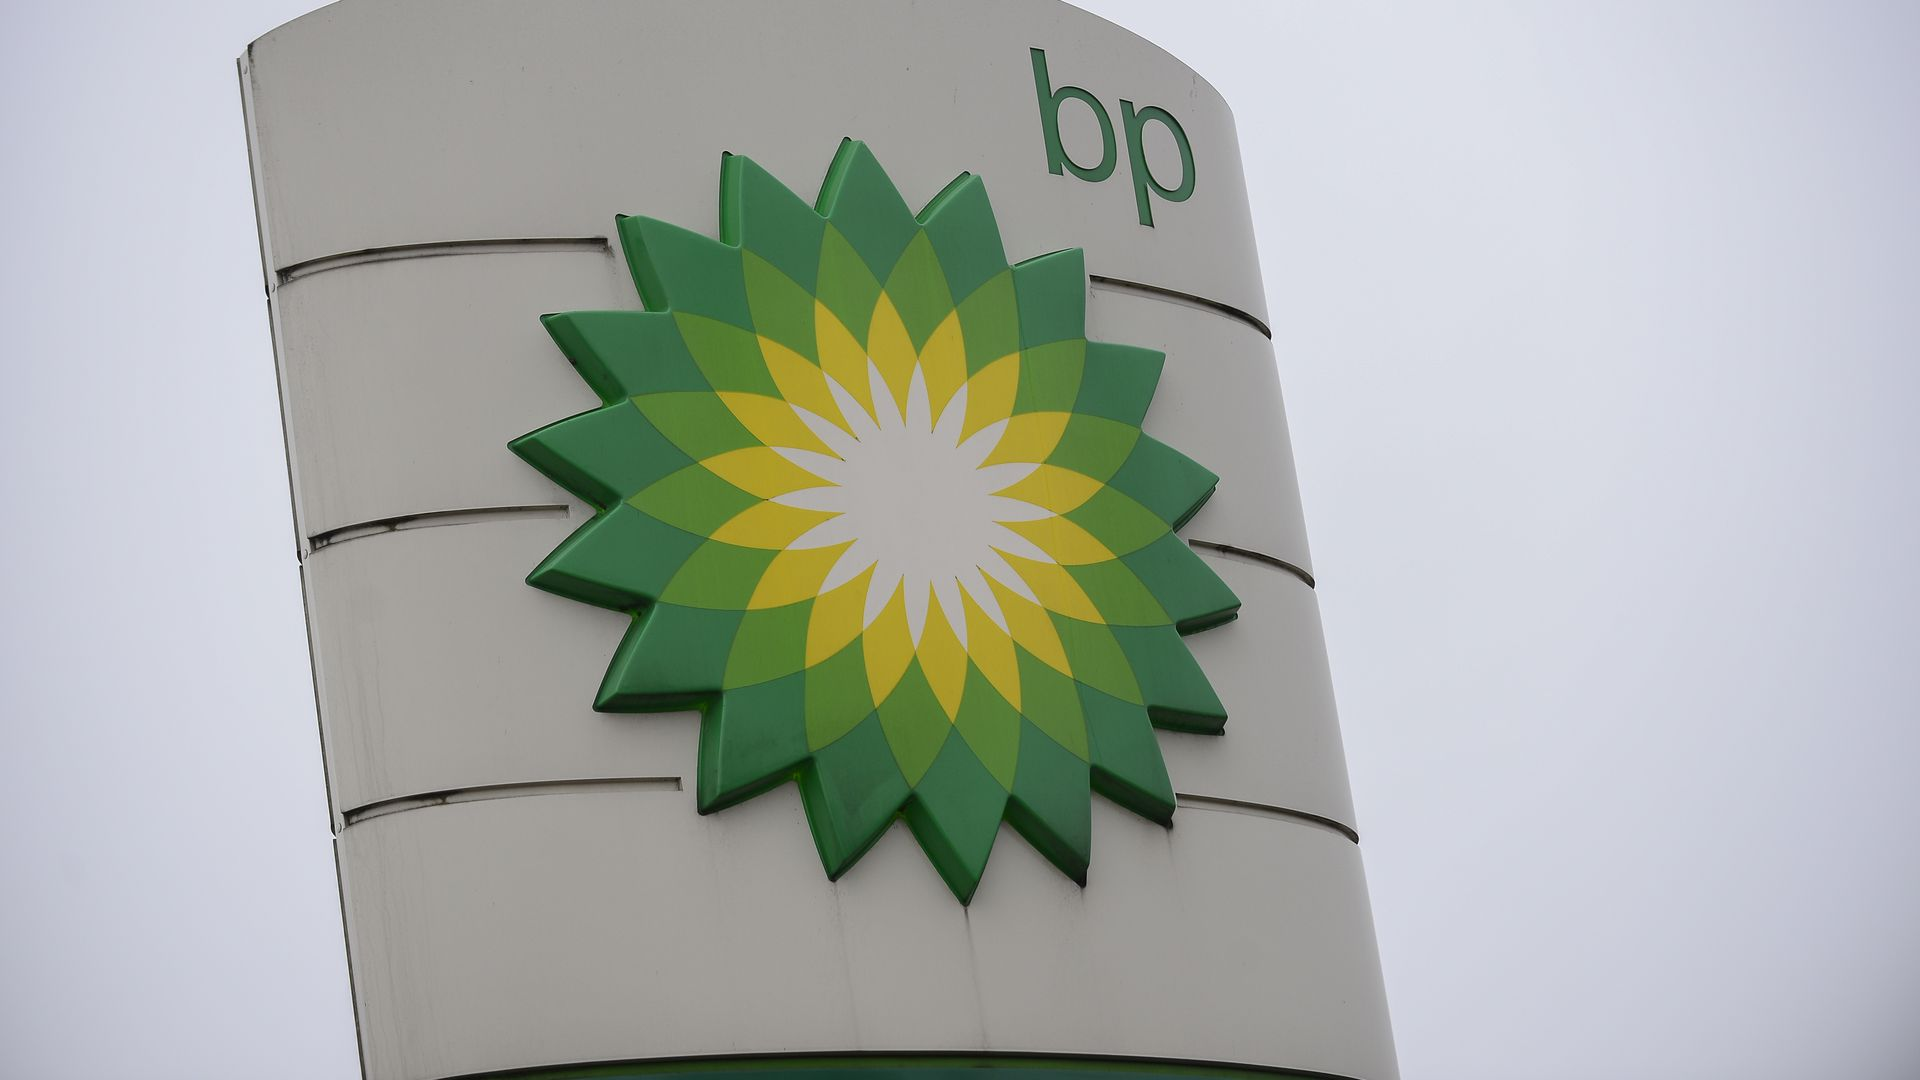 BP green and yellow logo sign for a gas station